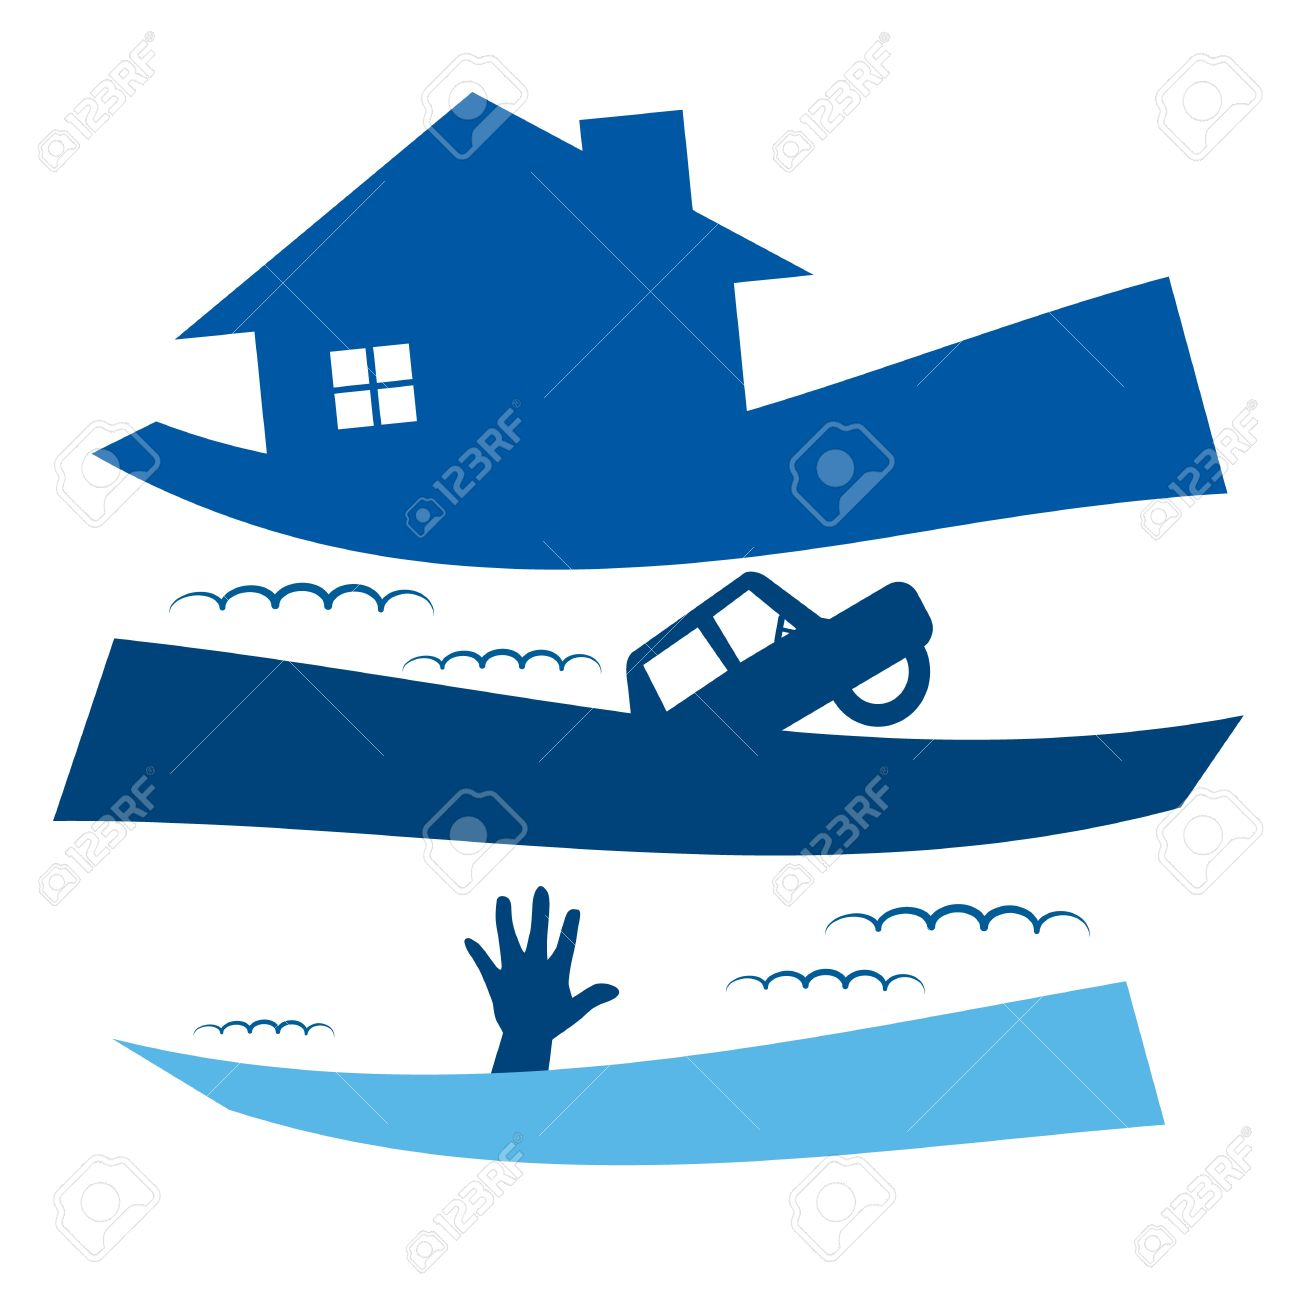 881 Flood Damage Stock Vector Illustration And Royalty Free Flood.